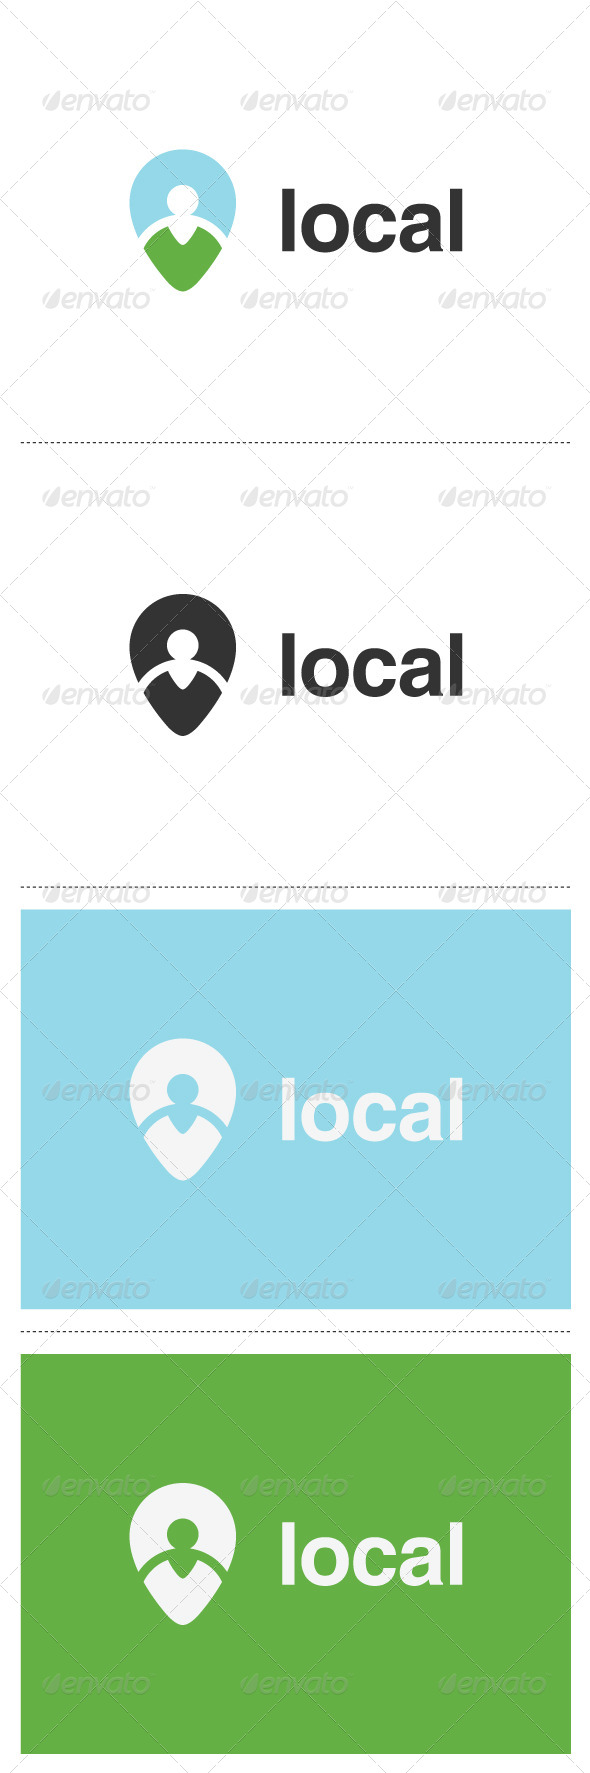 GraphicRiver Local logo 5921749